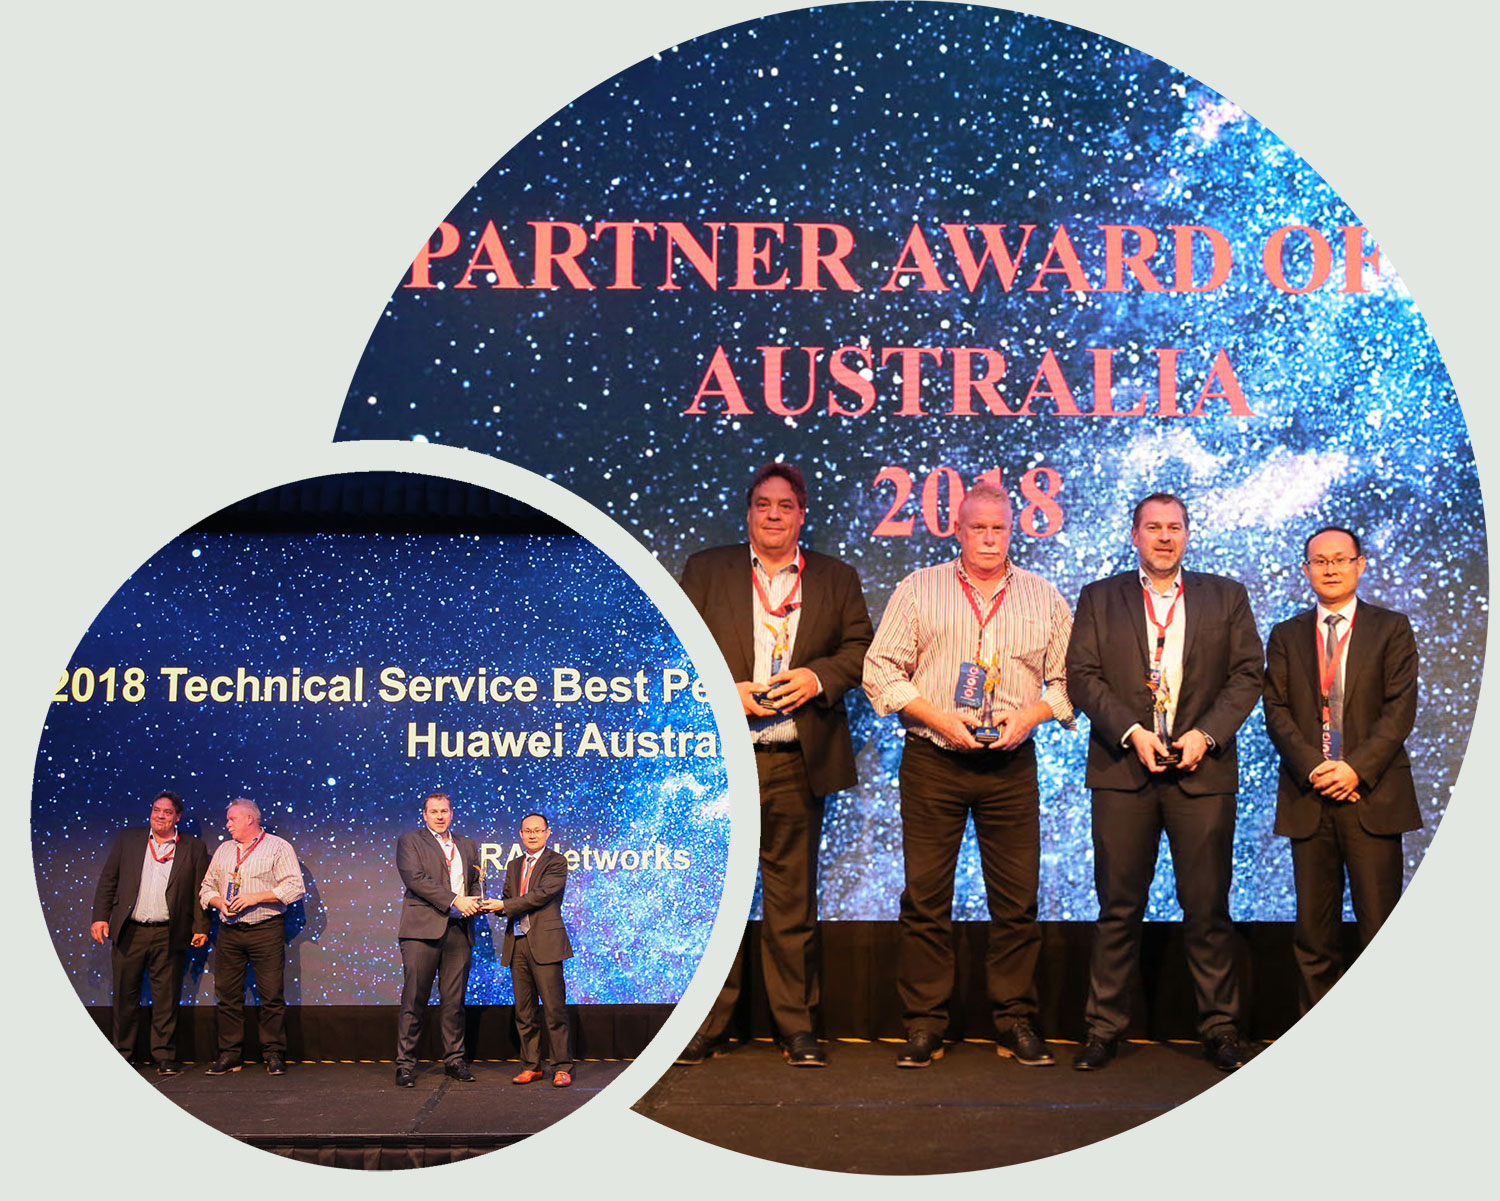 GRA-Networks-Australia-Awarded-National-2018-Best-Technical-Service-Award-for-Huawai-Australia